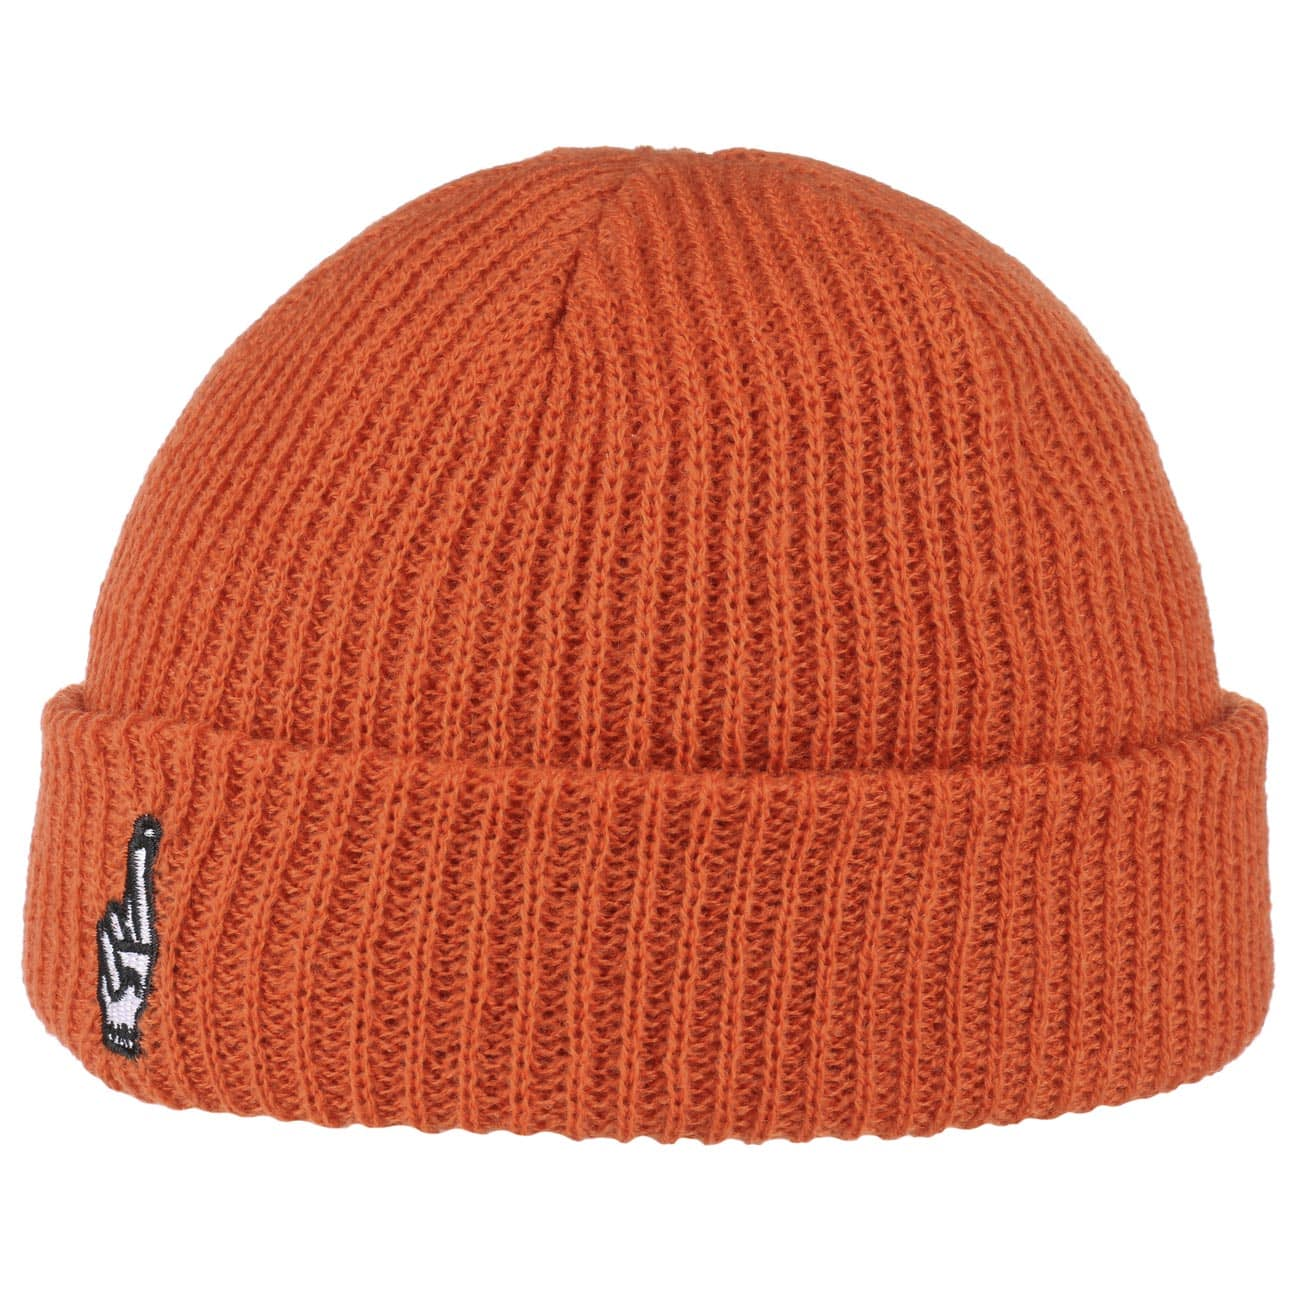 Gorro Beanie Sinclair by Loser Machine  gorro de invierno